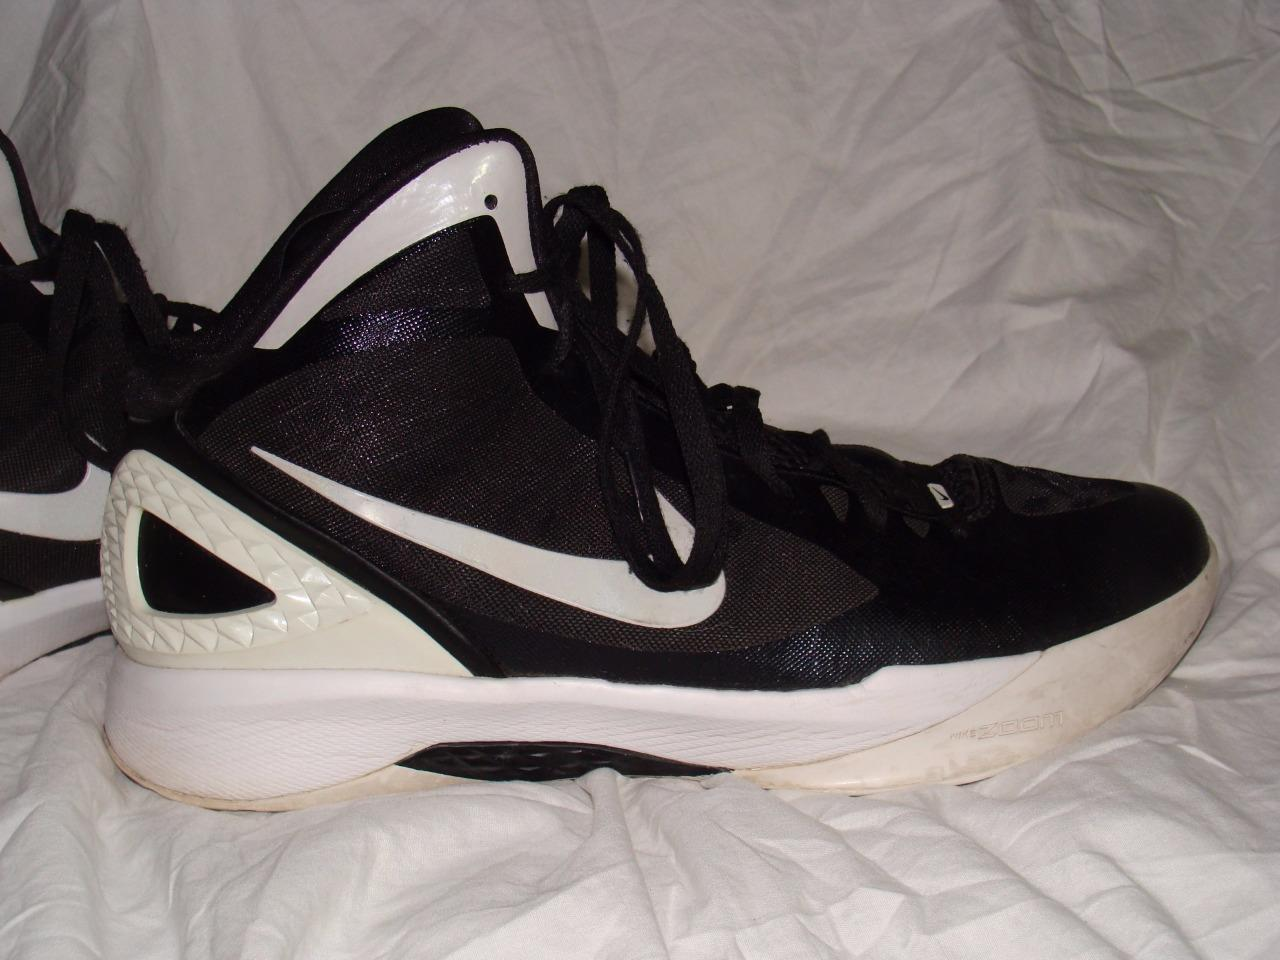 NICE USED NIKE ZOOM HYPERDUNK FLYWIRE HIGH TOPS Price reduction best-selling model of the brand